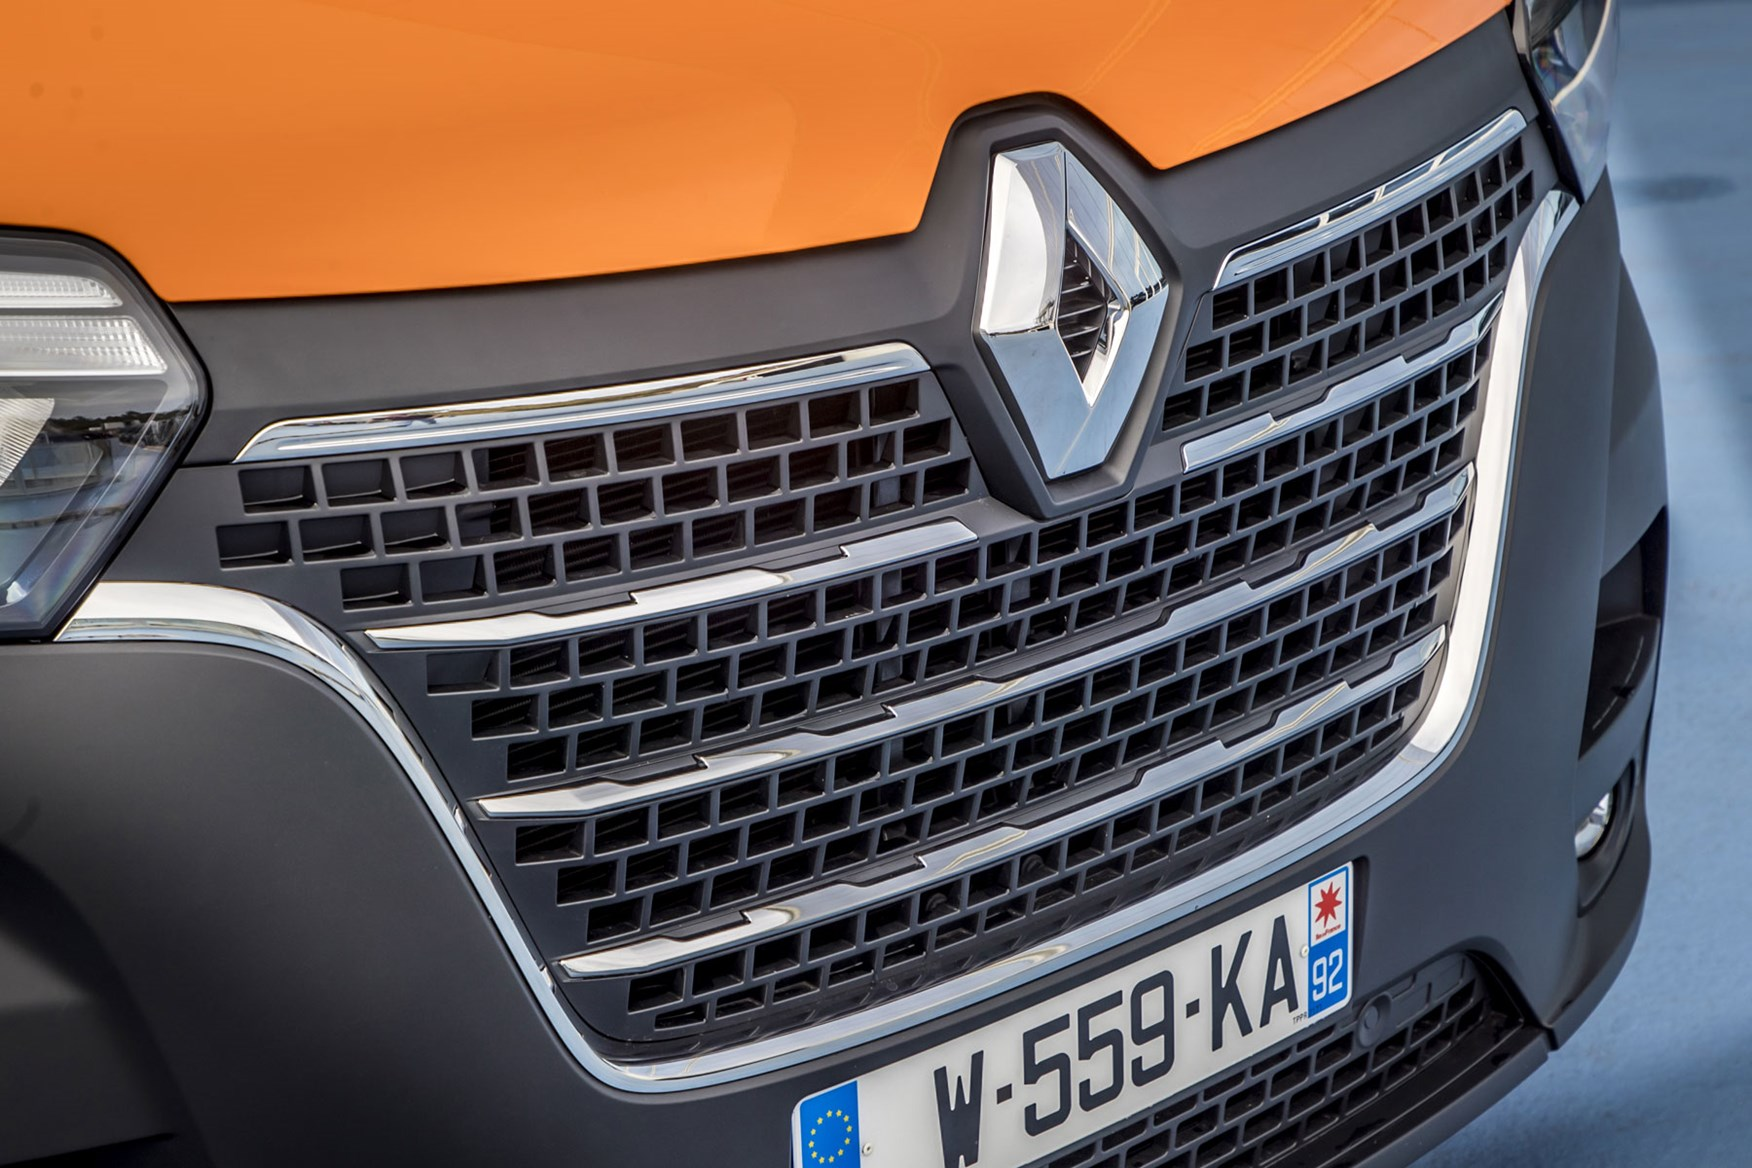 Renault Master review - 2019 facelift, new front grille and bonnet detail, orange